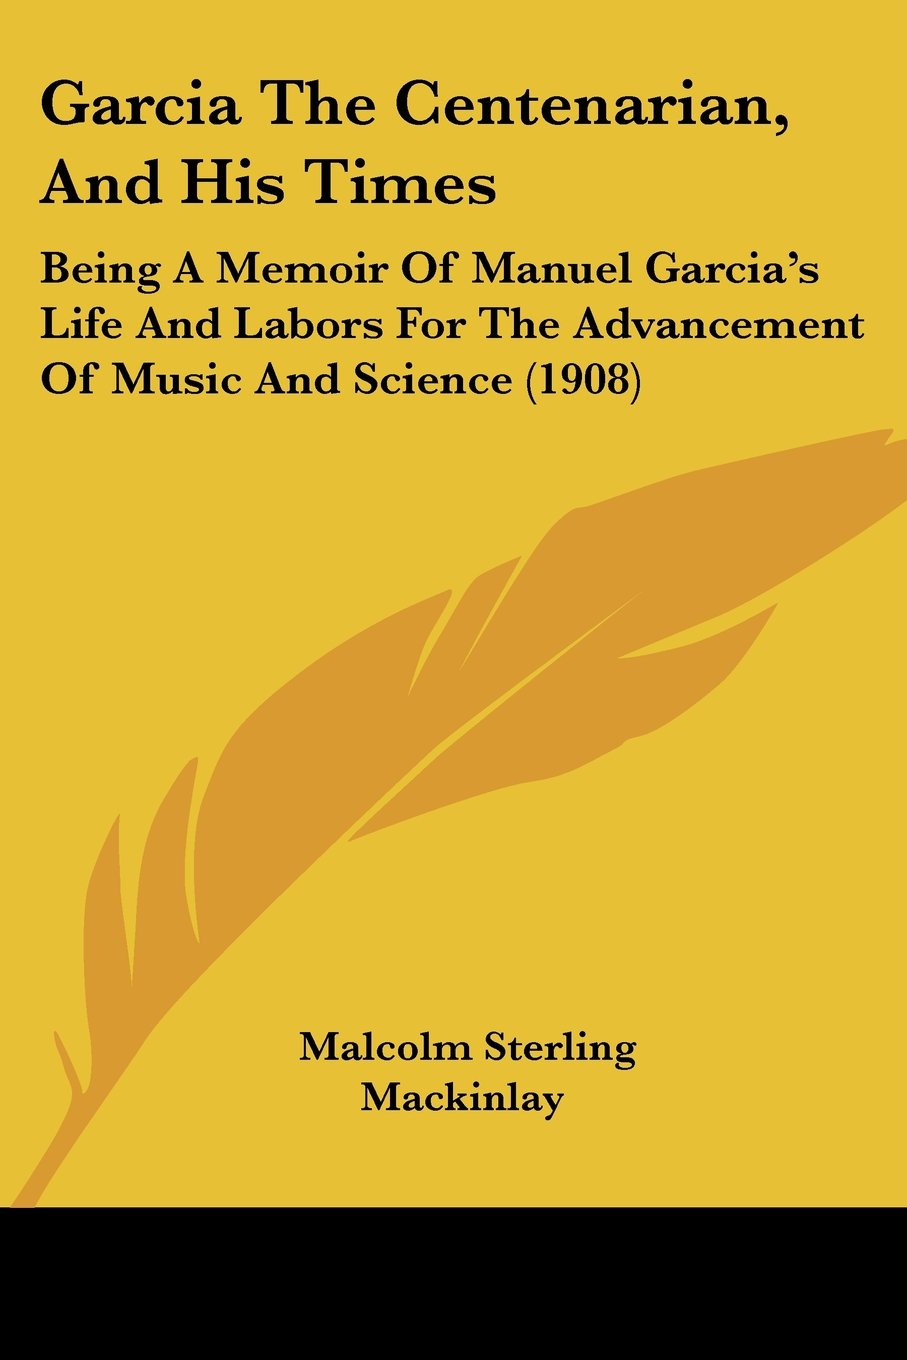 Download Garcia The Centenarian, And His Times: Being A Memoir Of Manuel Garcia's Life And Labors For The Advancement Of Music And Science (1908) pdf epub